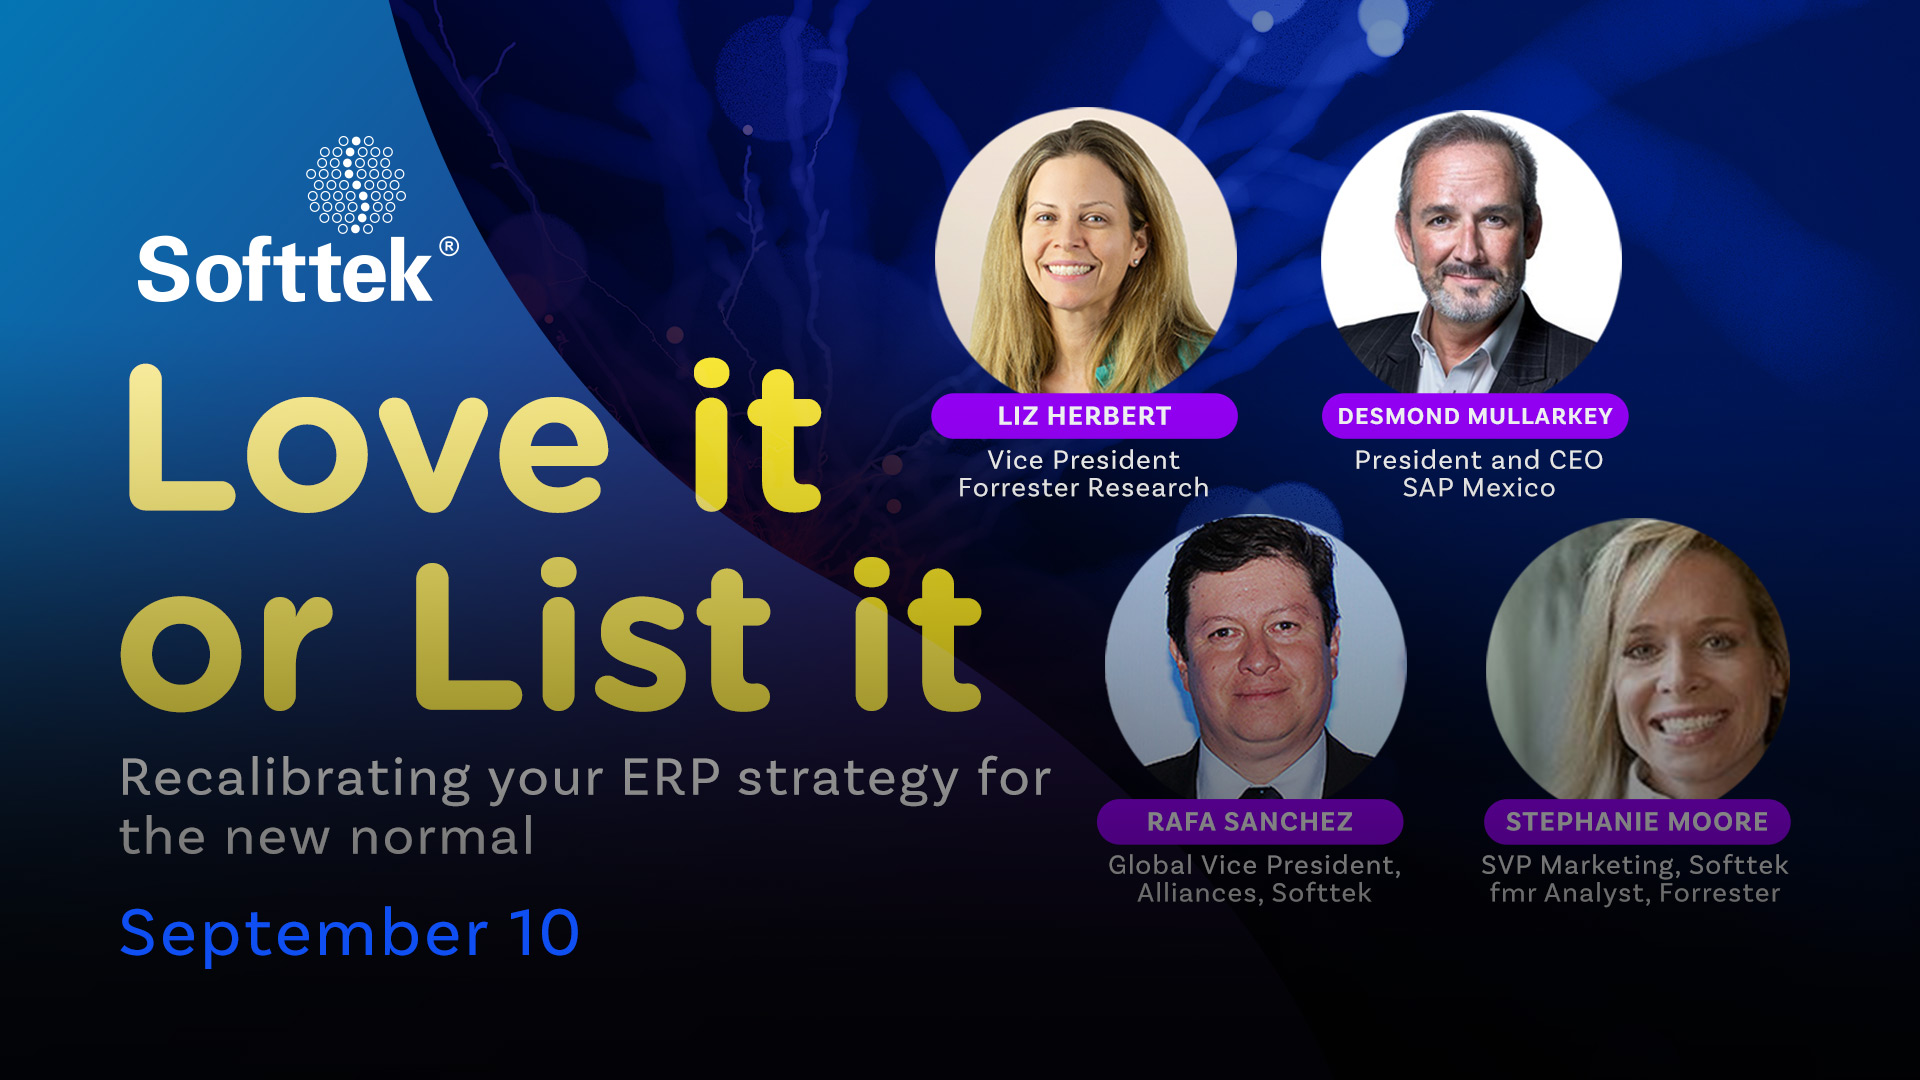 Softtek Webcast - Love it or List it Recalibrating your ERP strategy for the new normal